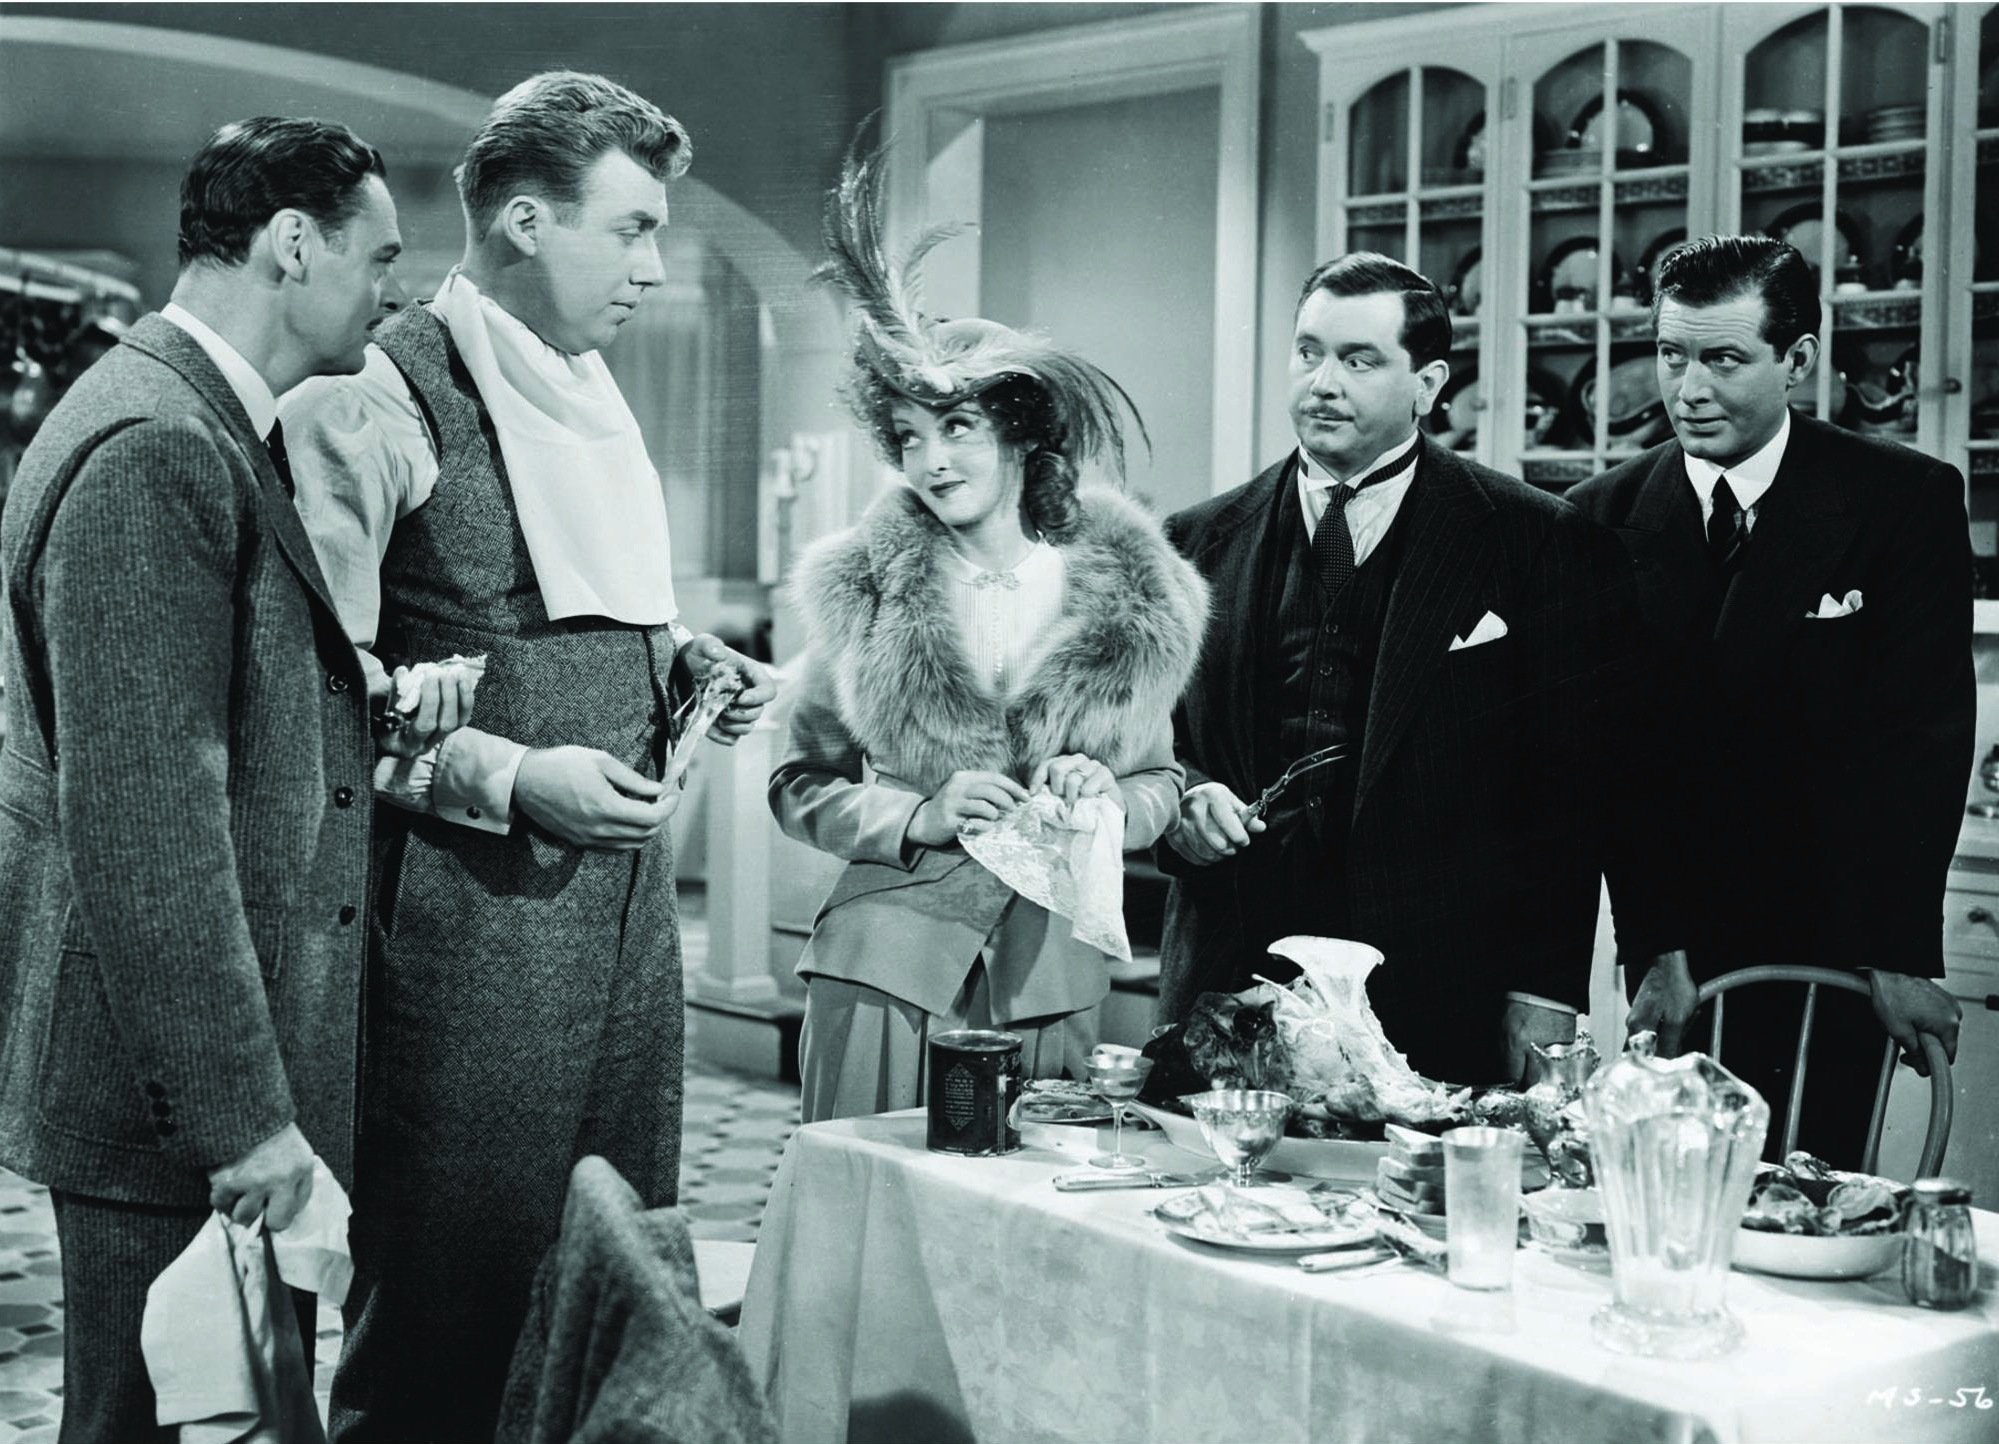 Bette Davis, John Alexander, Jerome Cowan, and Peter Whitney in Mr. Skeffington (1944)